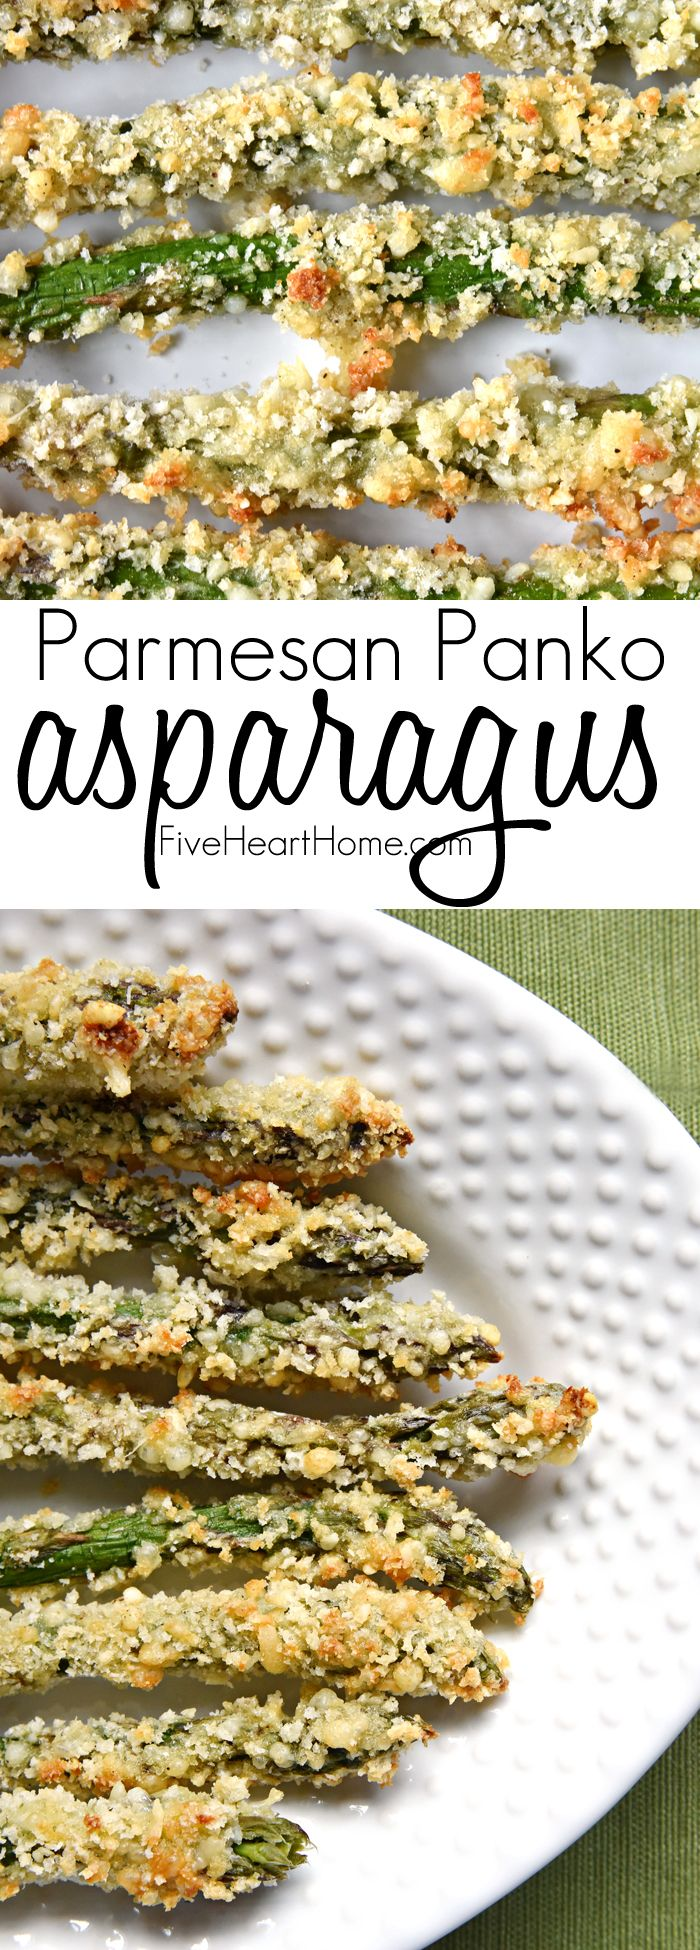 "Parmesan Panko Asparagus ~ fresh asparagus spears are coated in a mixture of grated Parmesan and panko breadcrumbs and baked until crispy and golden brown for an addictive, healthy, ""asparagus fries"" side dish or snack 